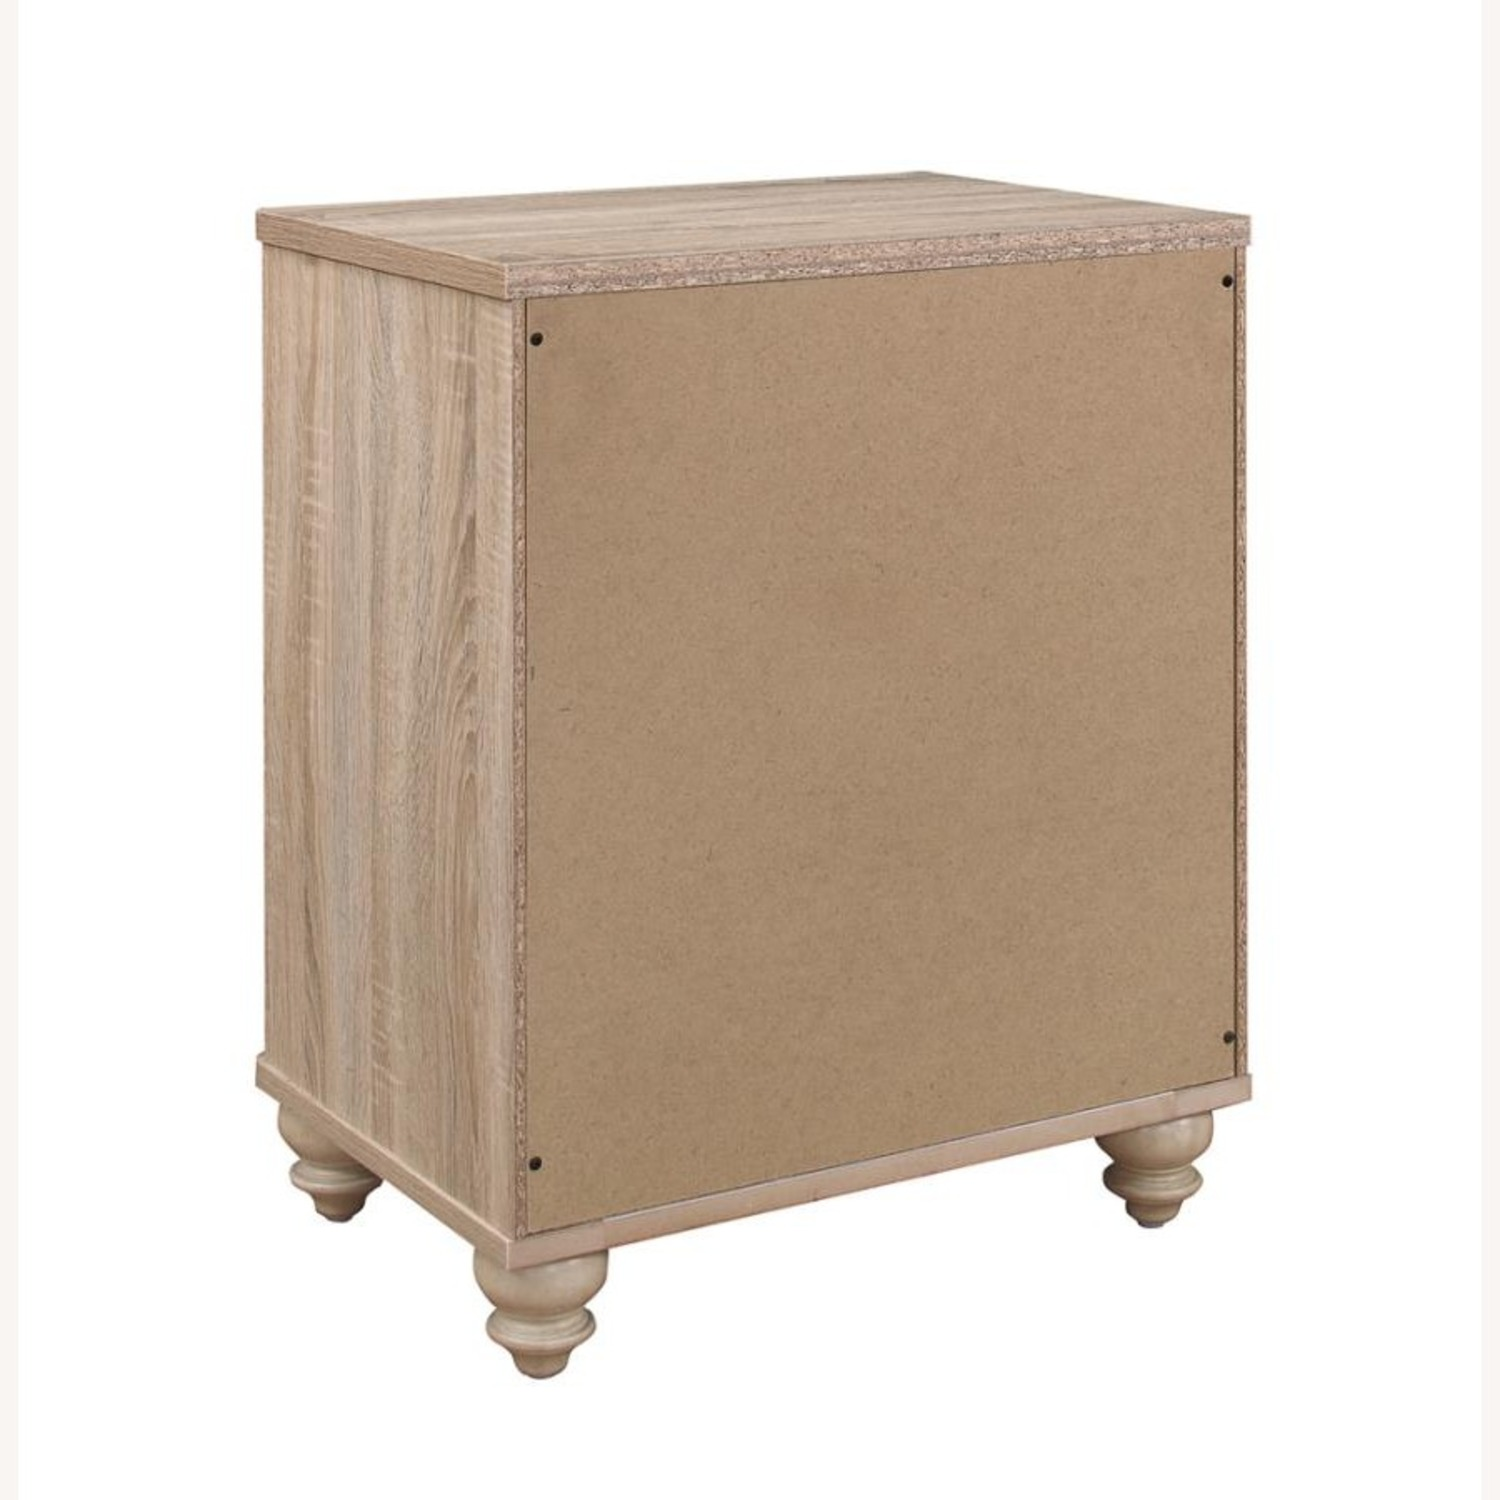 3-Drawer Nightstand In Natural Oak Finish - image-2